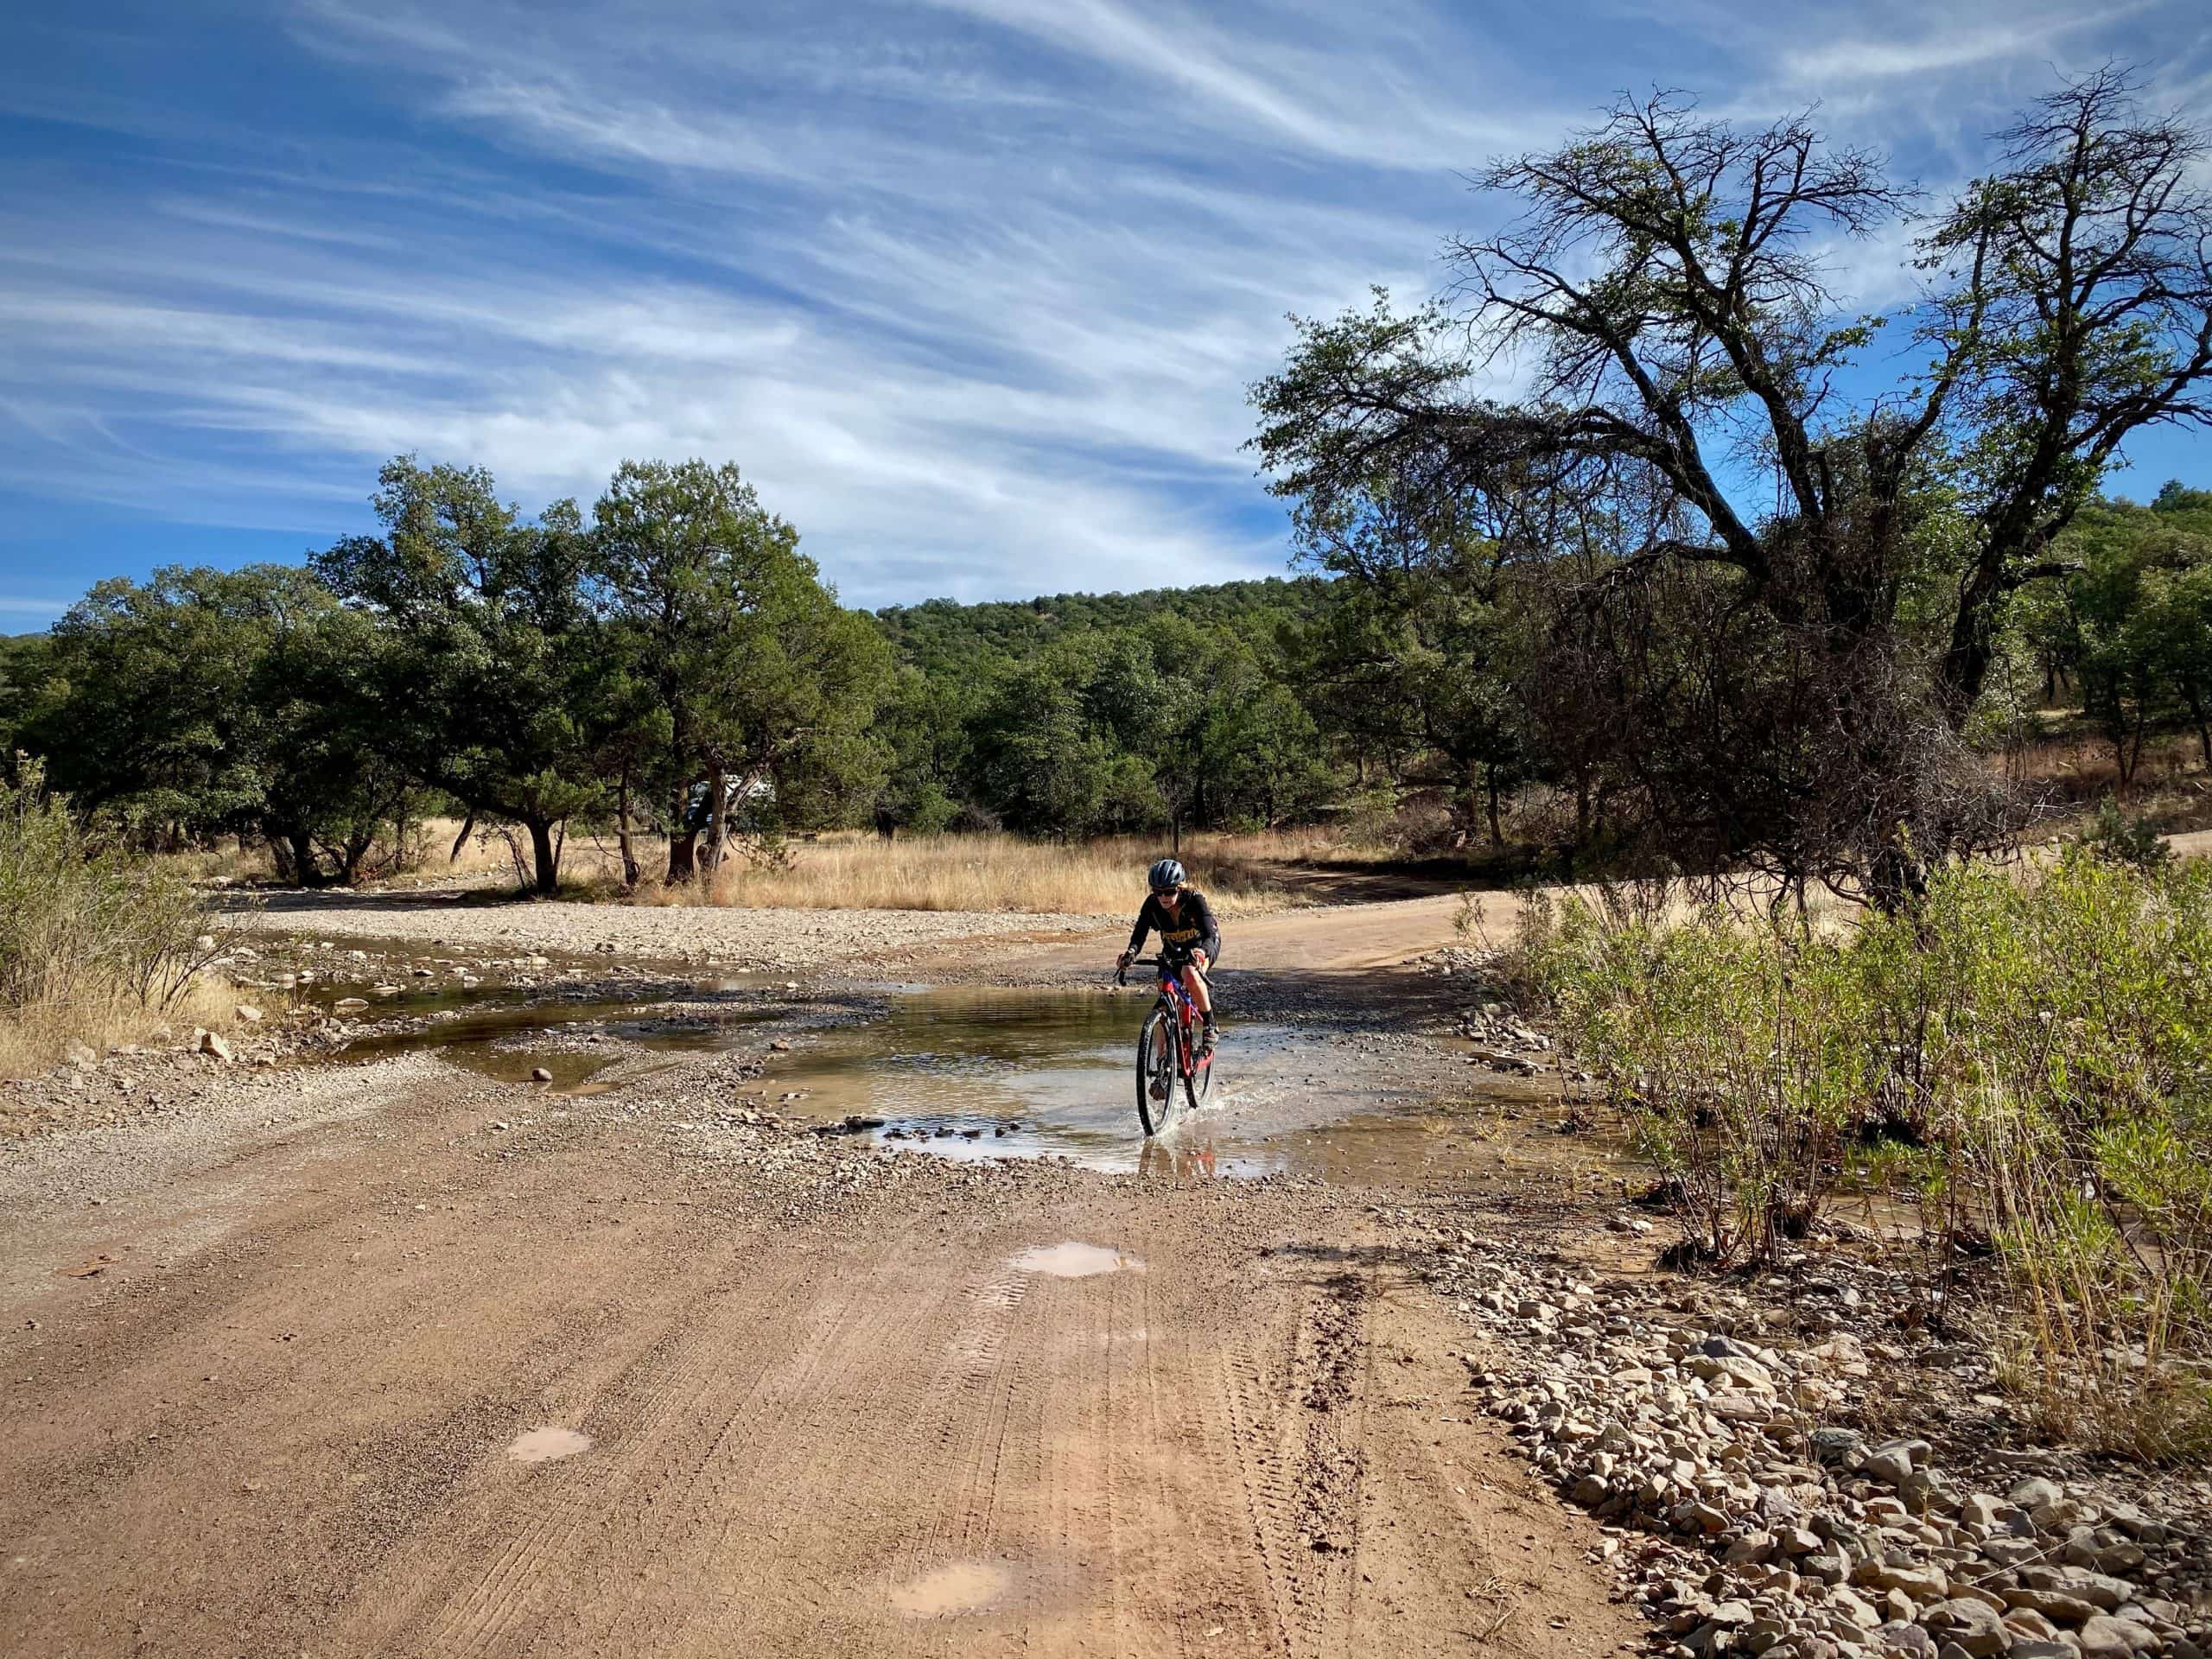 Cyclist riding through a wash with running water in the San Rafael Valley near Patagonia, Arizona.